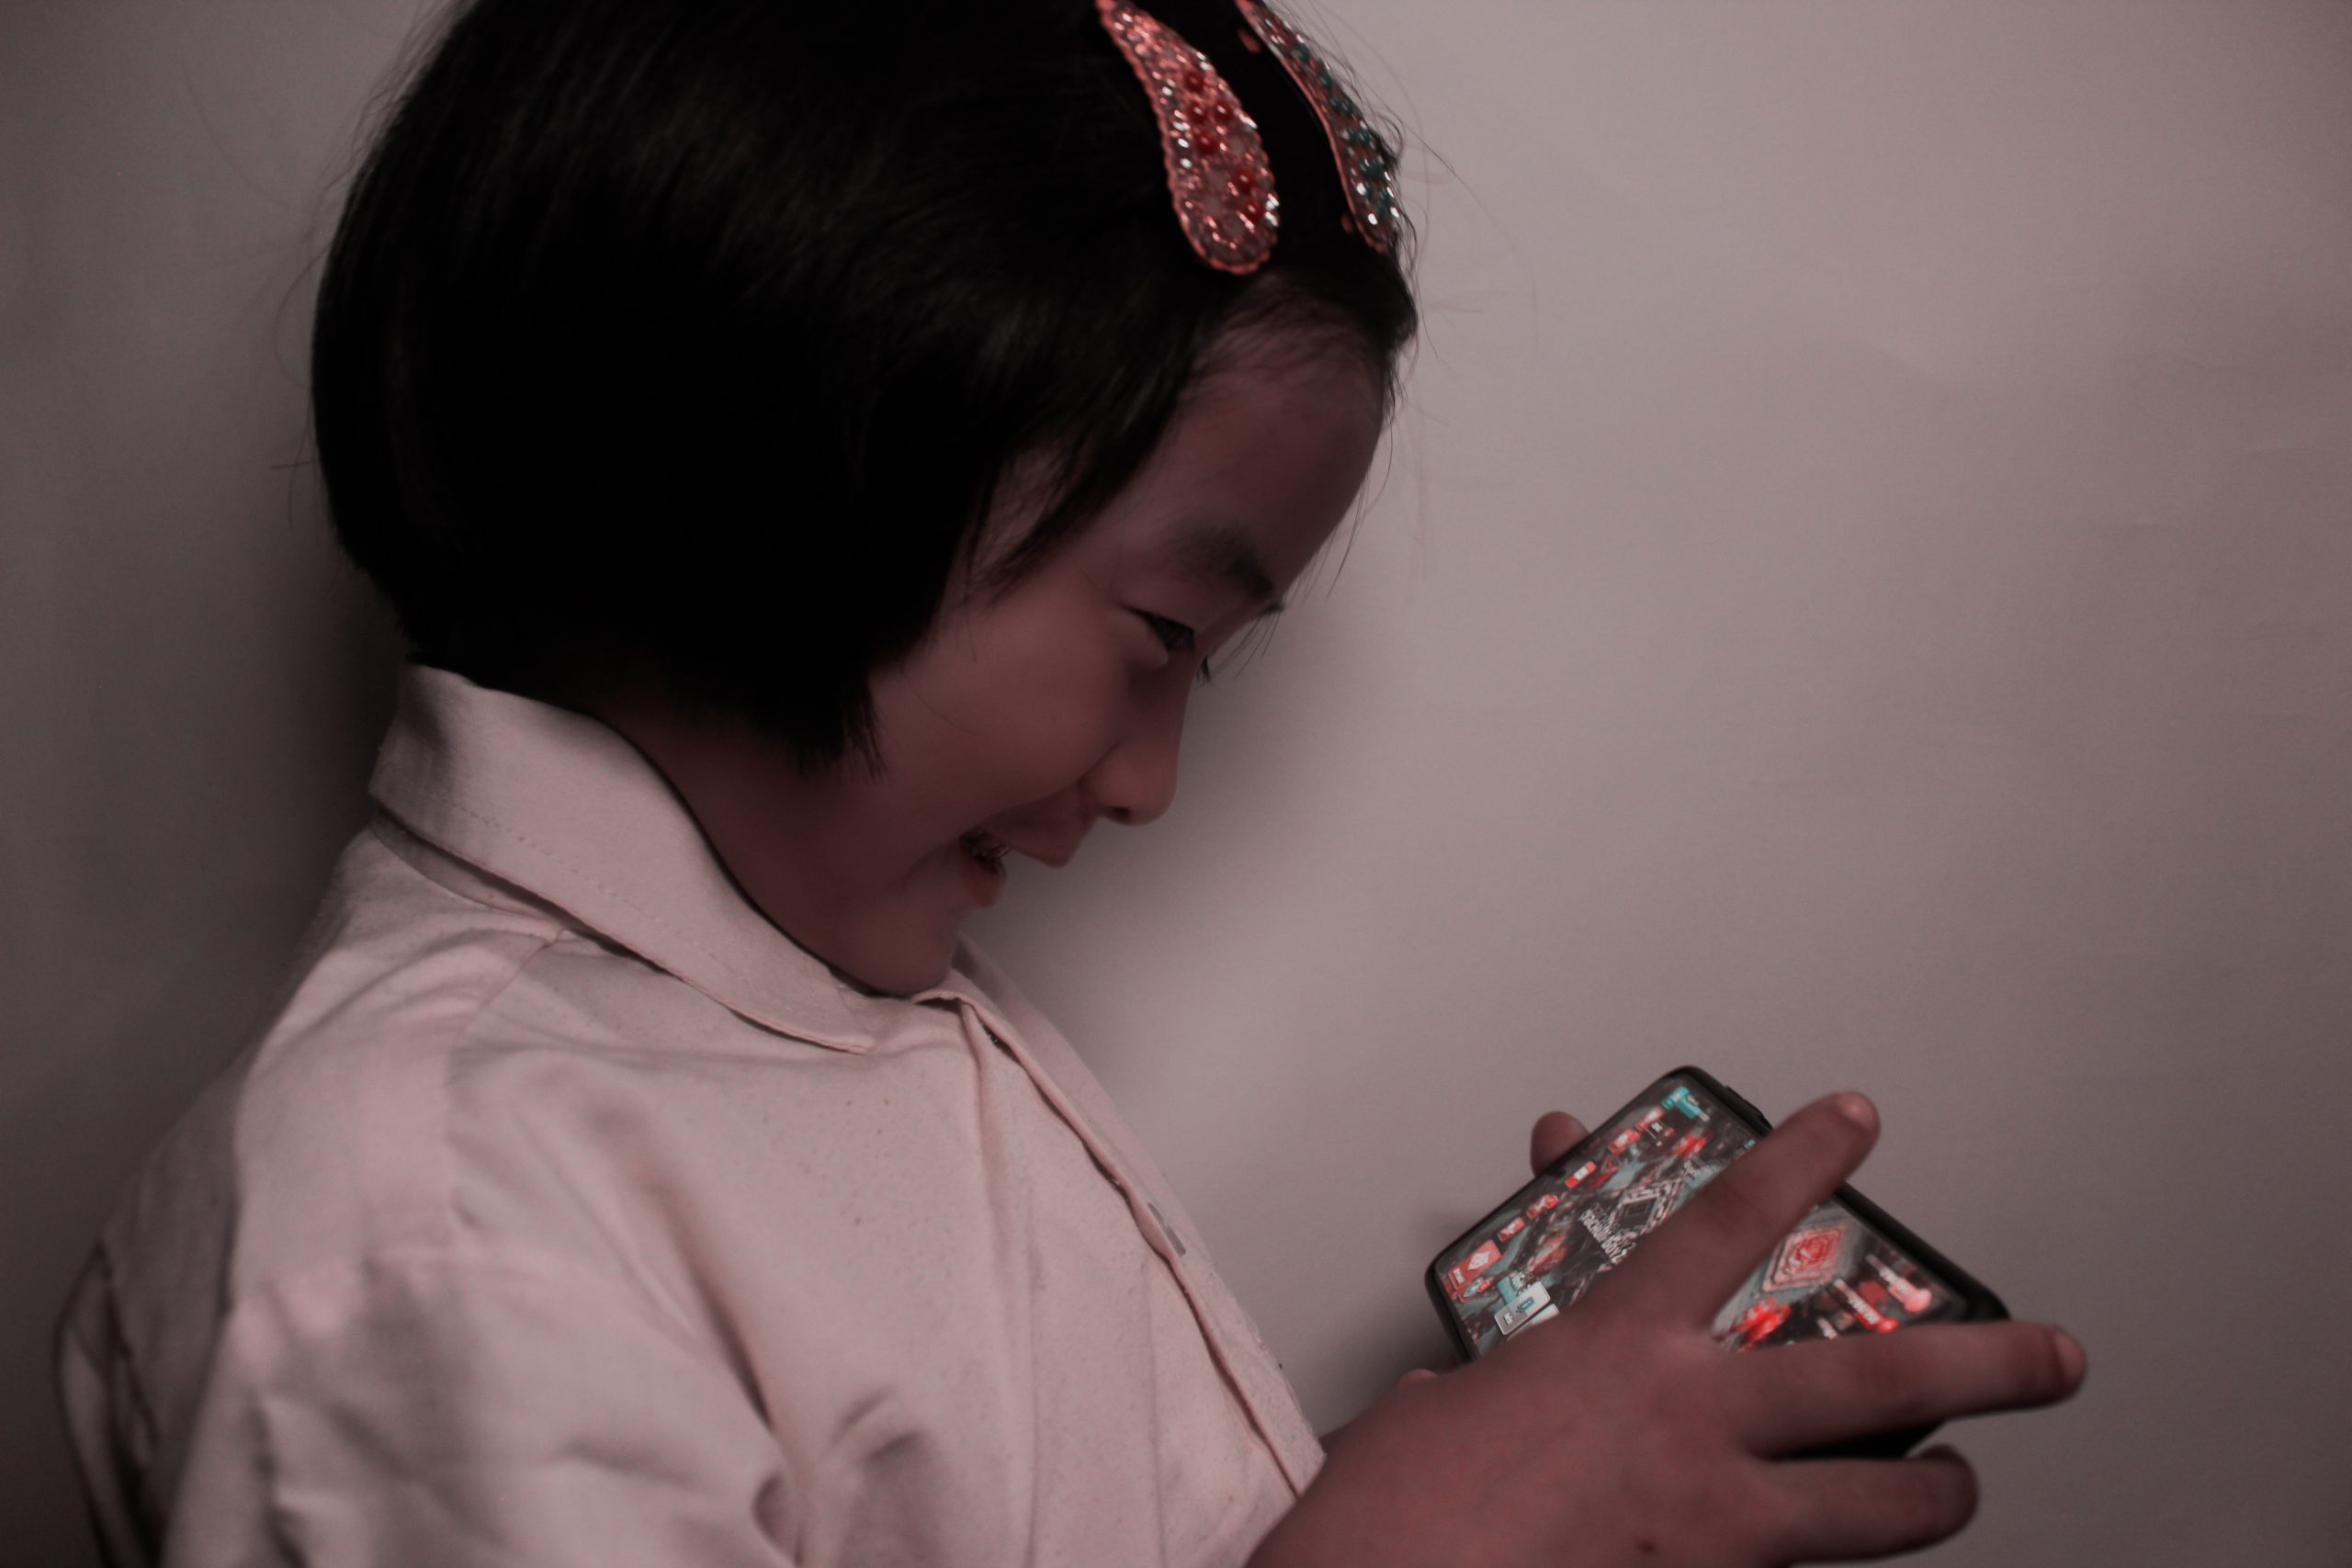 A little girl playing mobile game